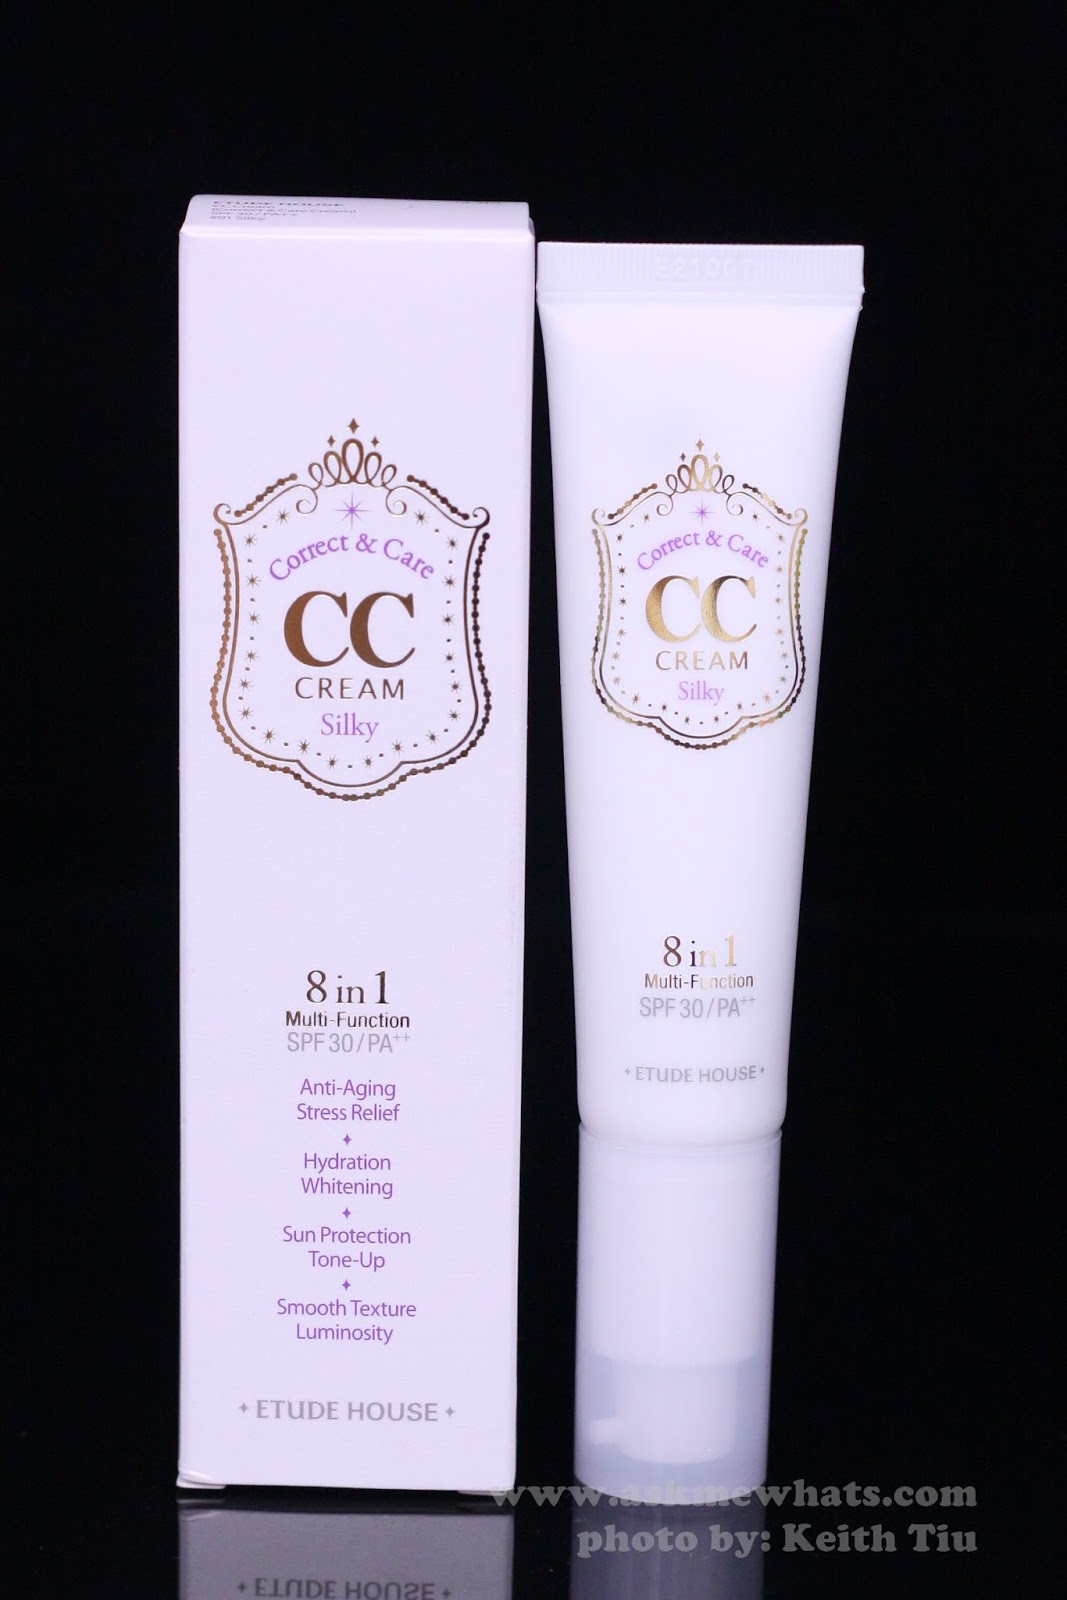 Etude house cc cream silky review